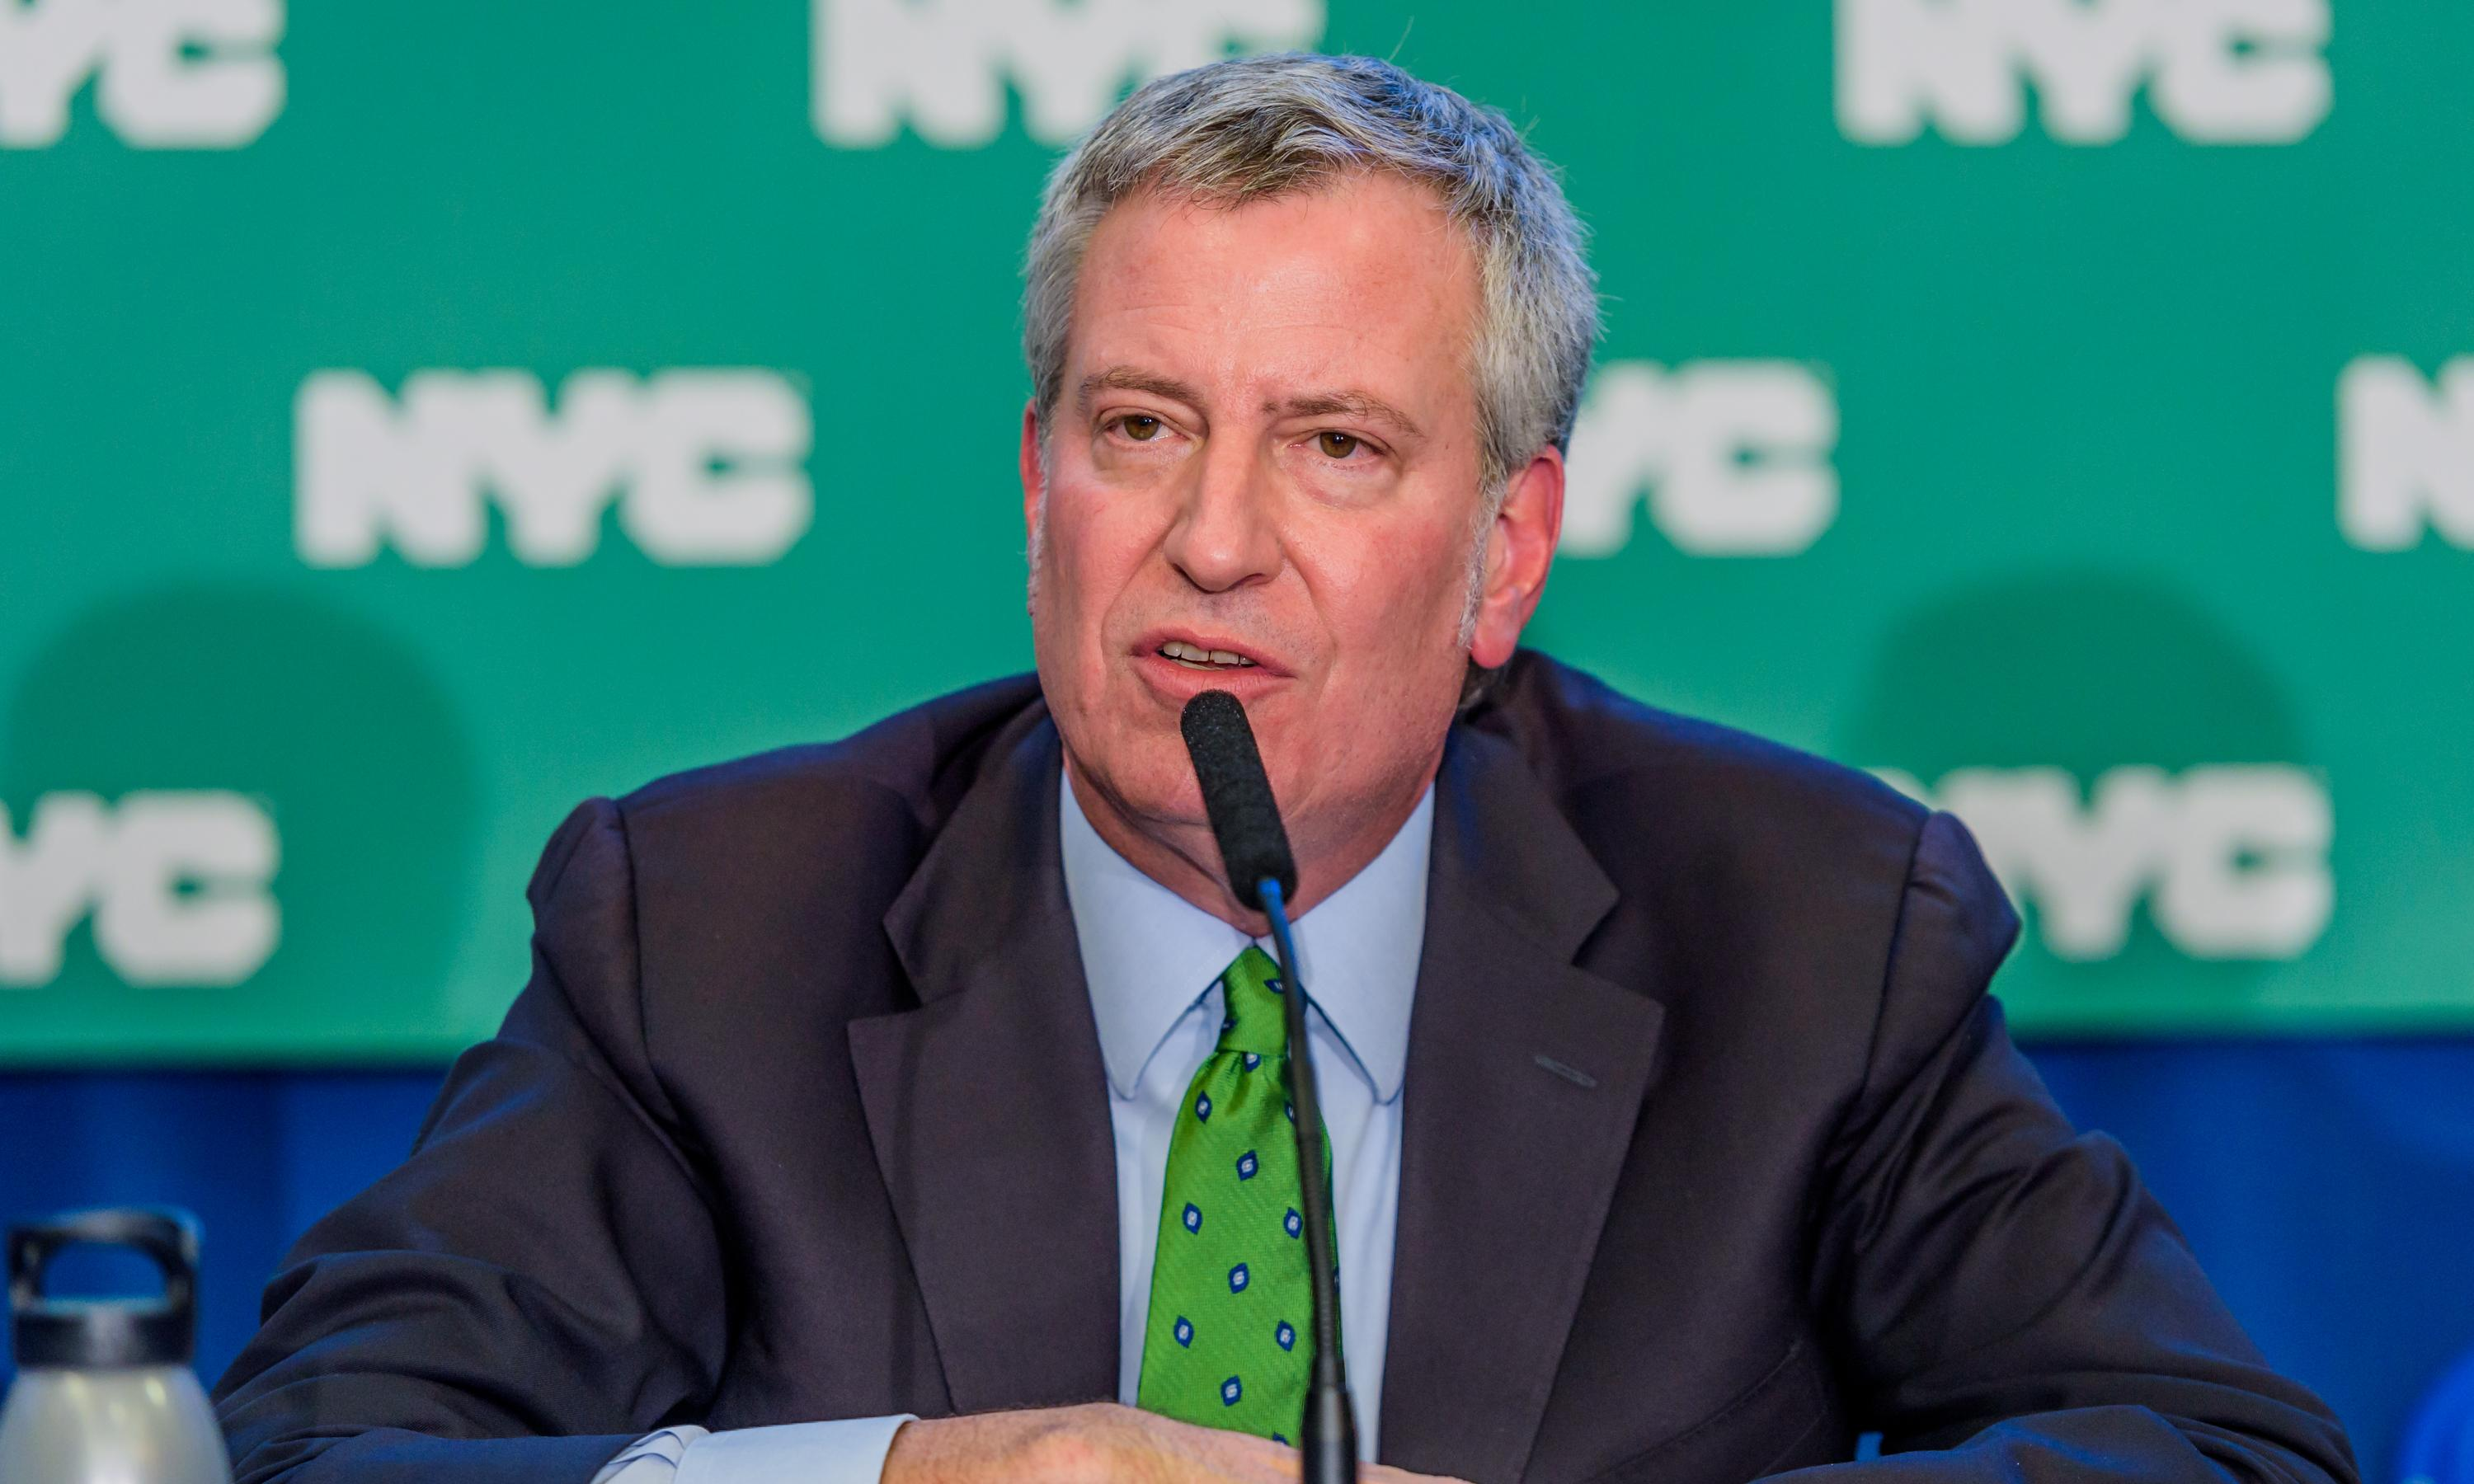 'Abuse of corporate power': Bill de Blasio slams Amazon for cancelling HQ2 deal